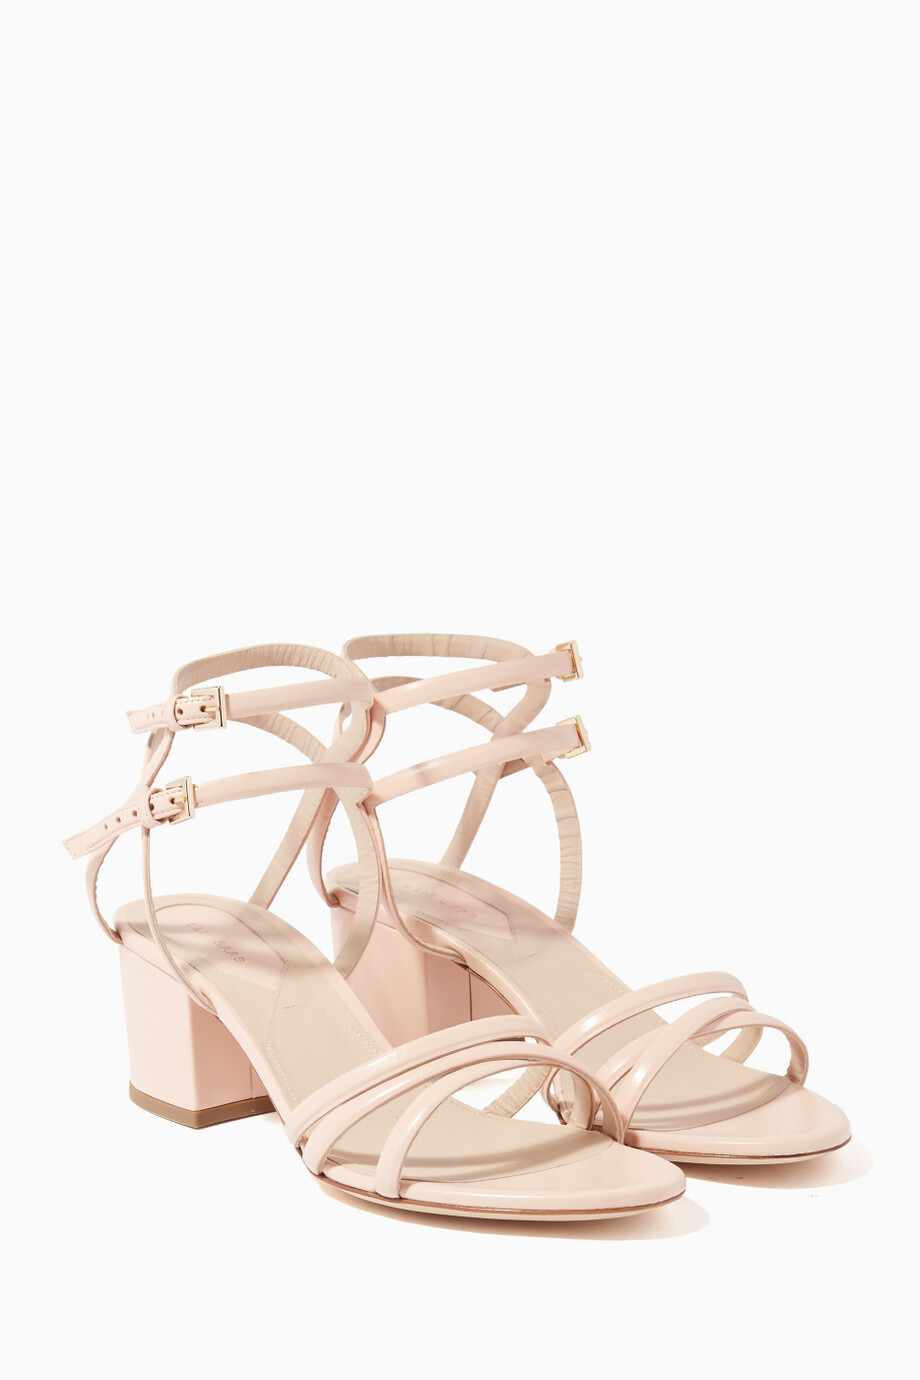 92a1d6d8f894 Shop Elie Saab Neutral Blush Leather Block-Heel Sandals for Women ...